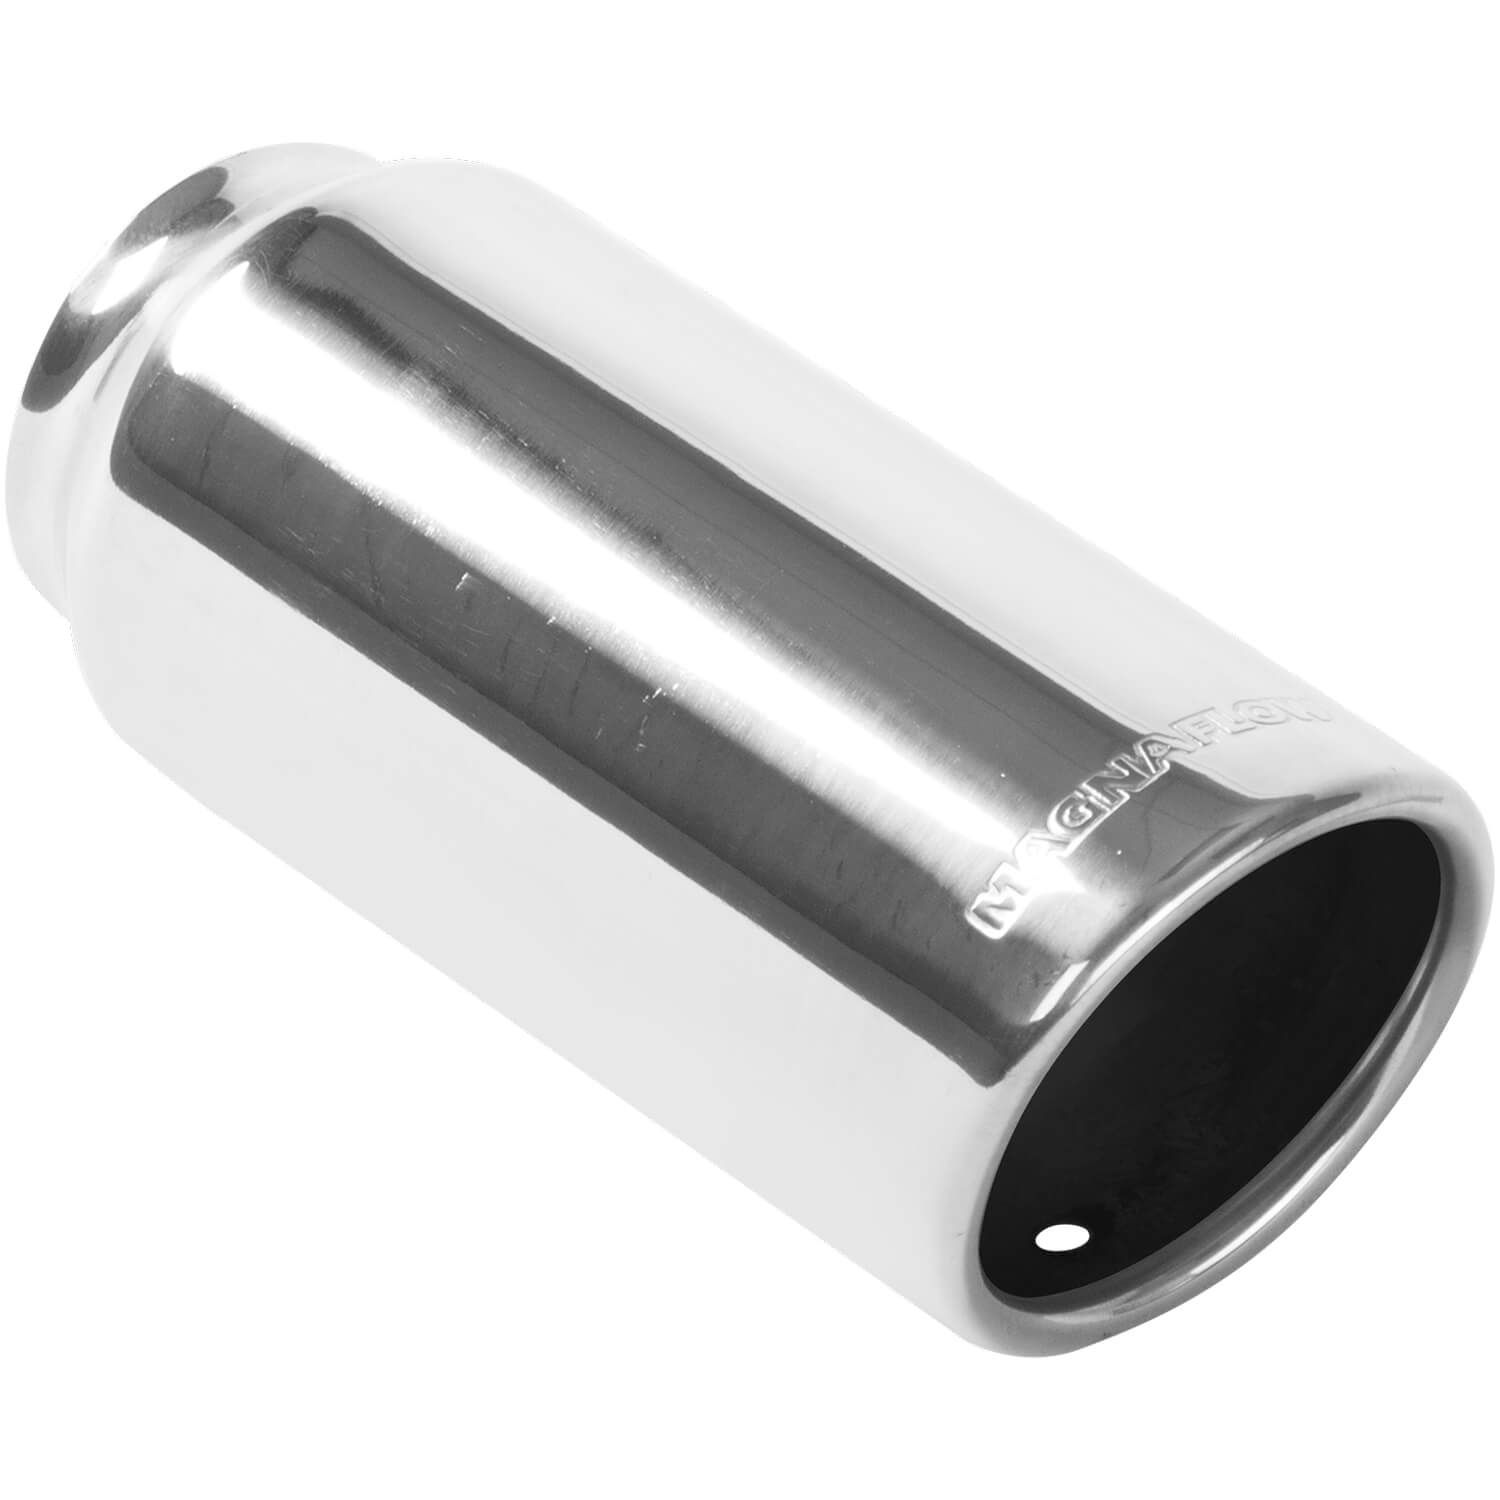 Magnaflow 35136 - Magnaflow Polished Stainless Steel Weld-On Single Exhaust Tips